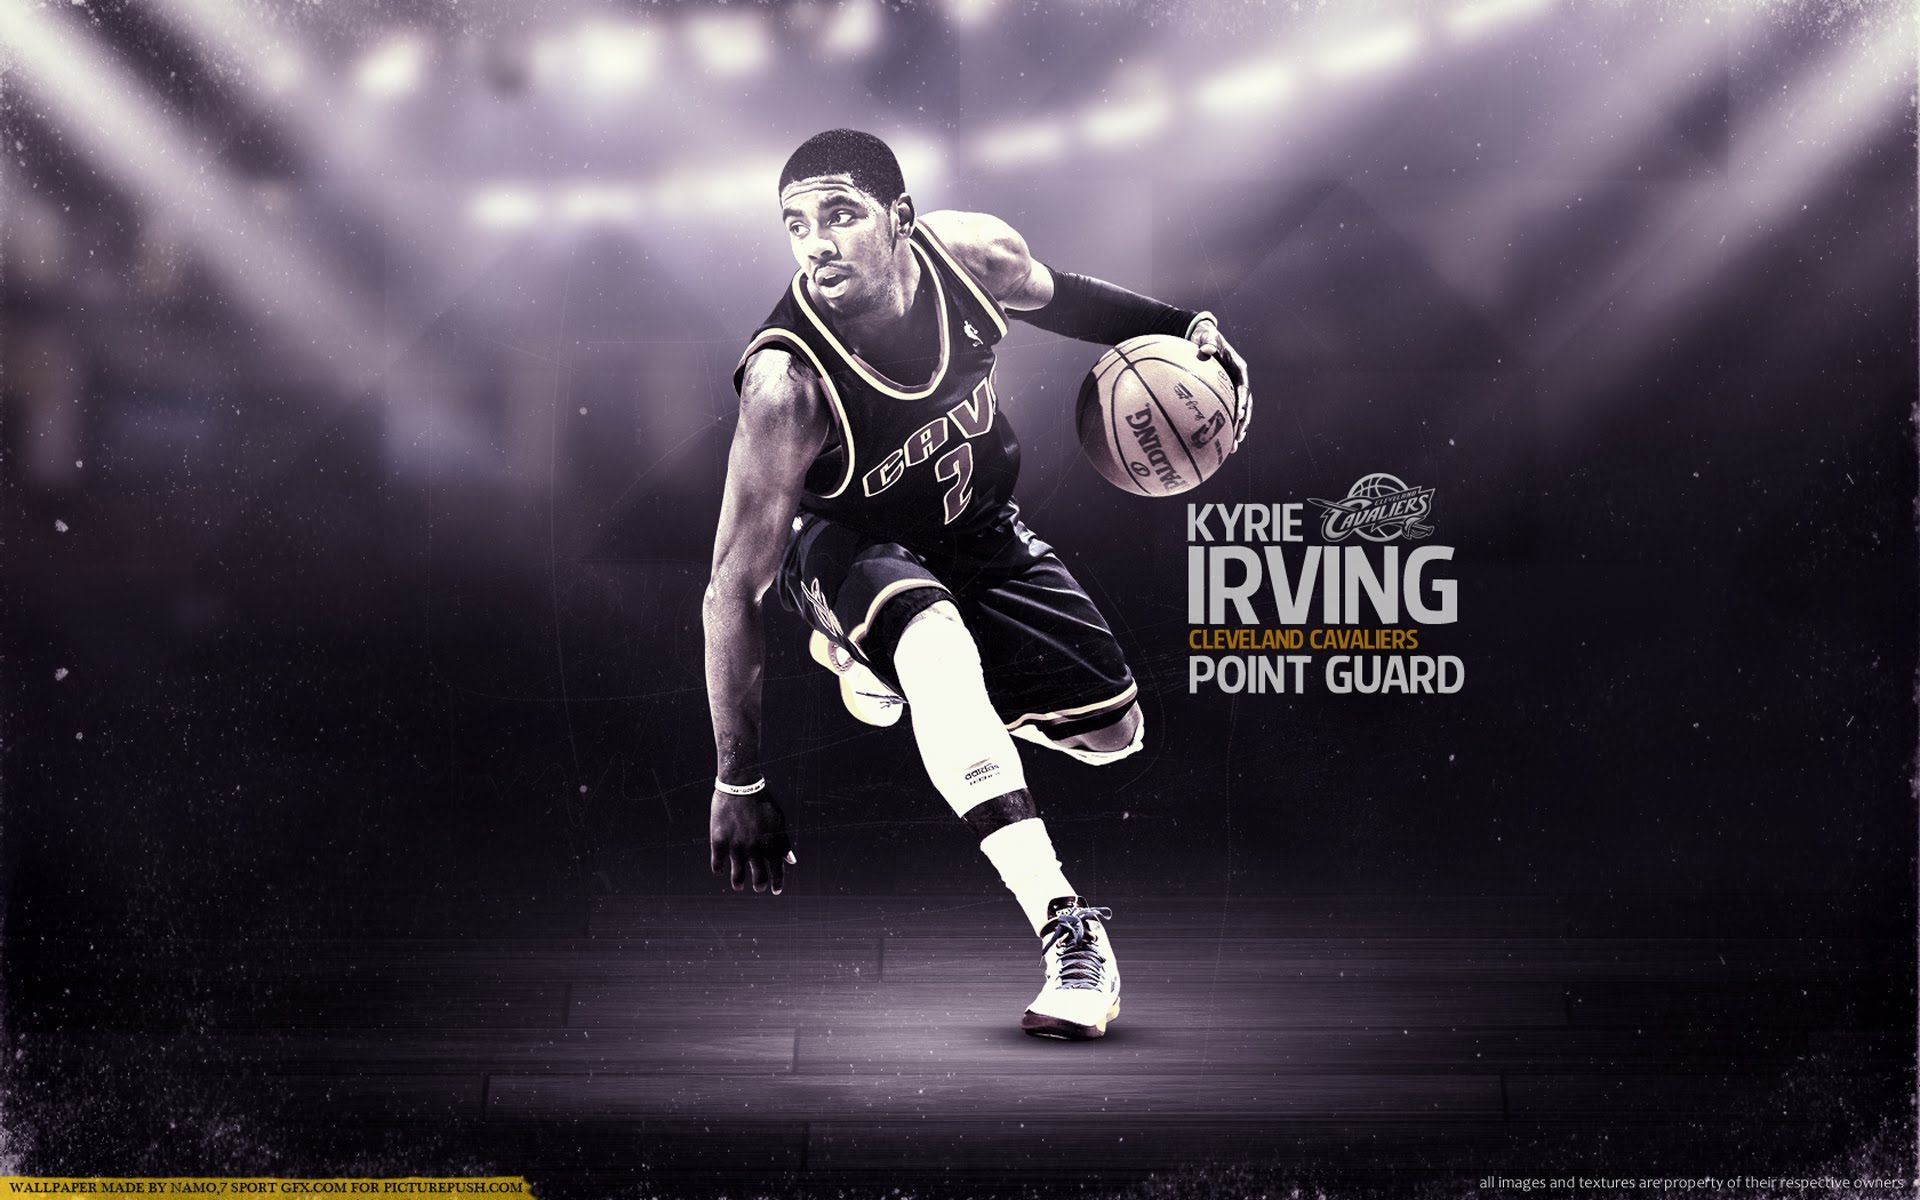 Kyrie Irving NBA Mix: Ballin ᴴᴰ | Kyrie irving, Irving wallpapers, Kyrie